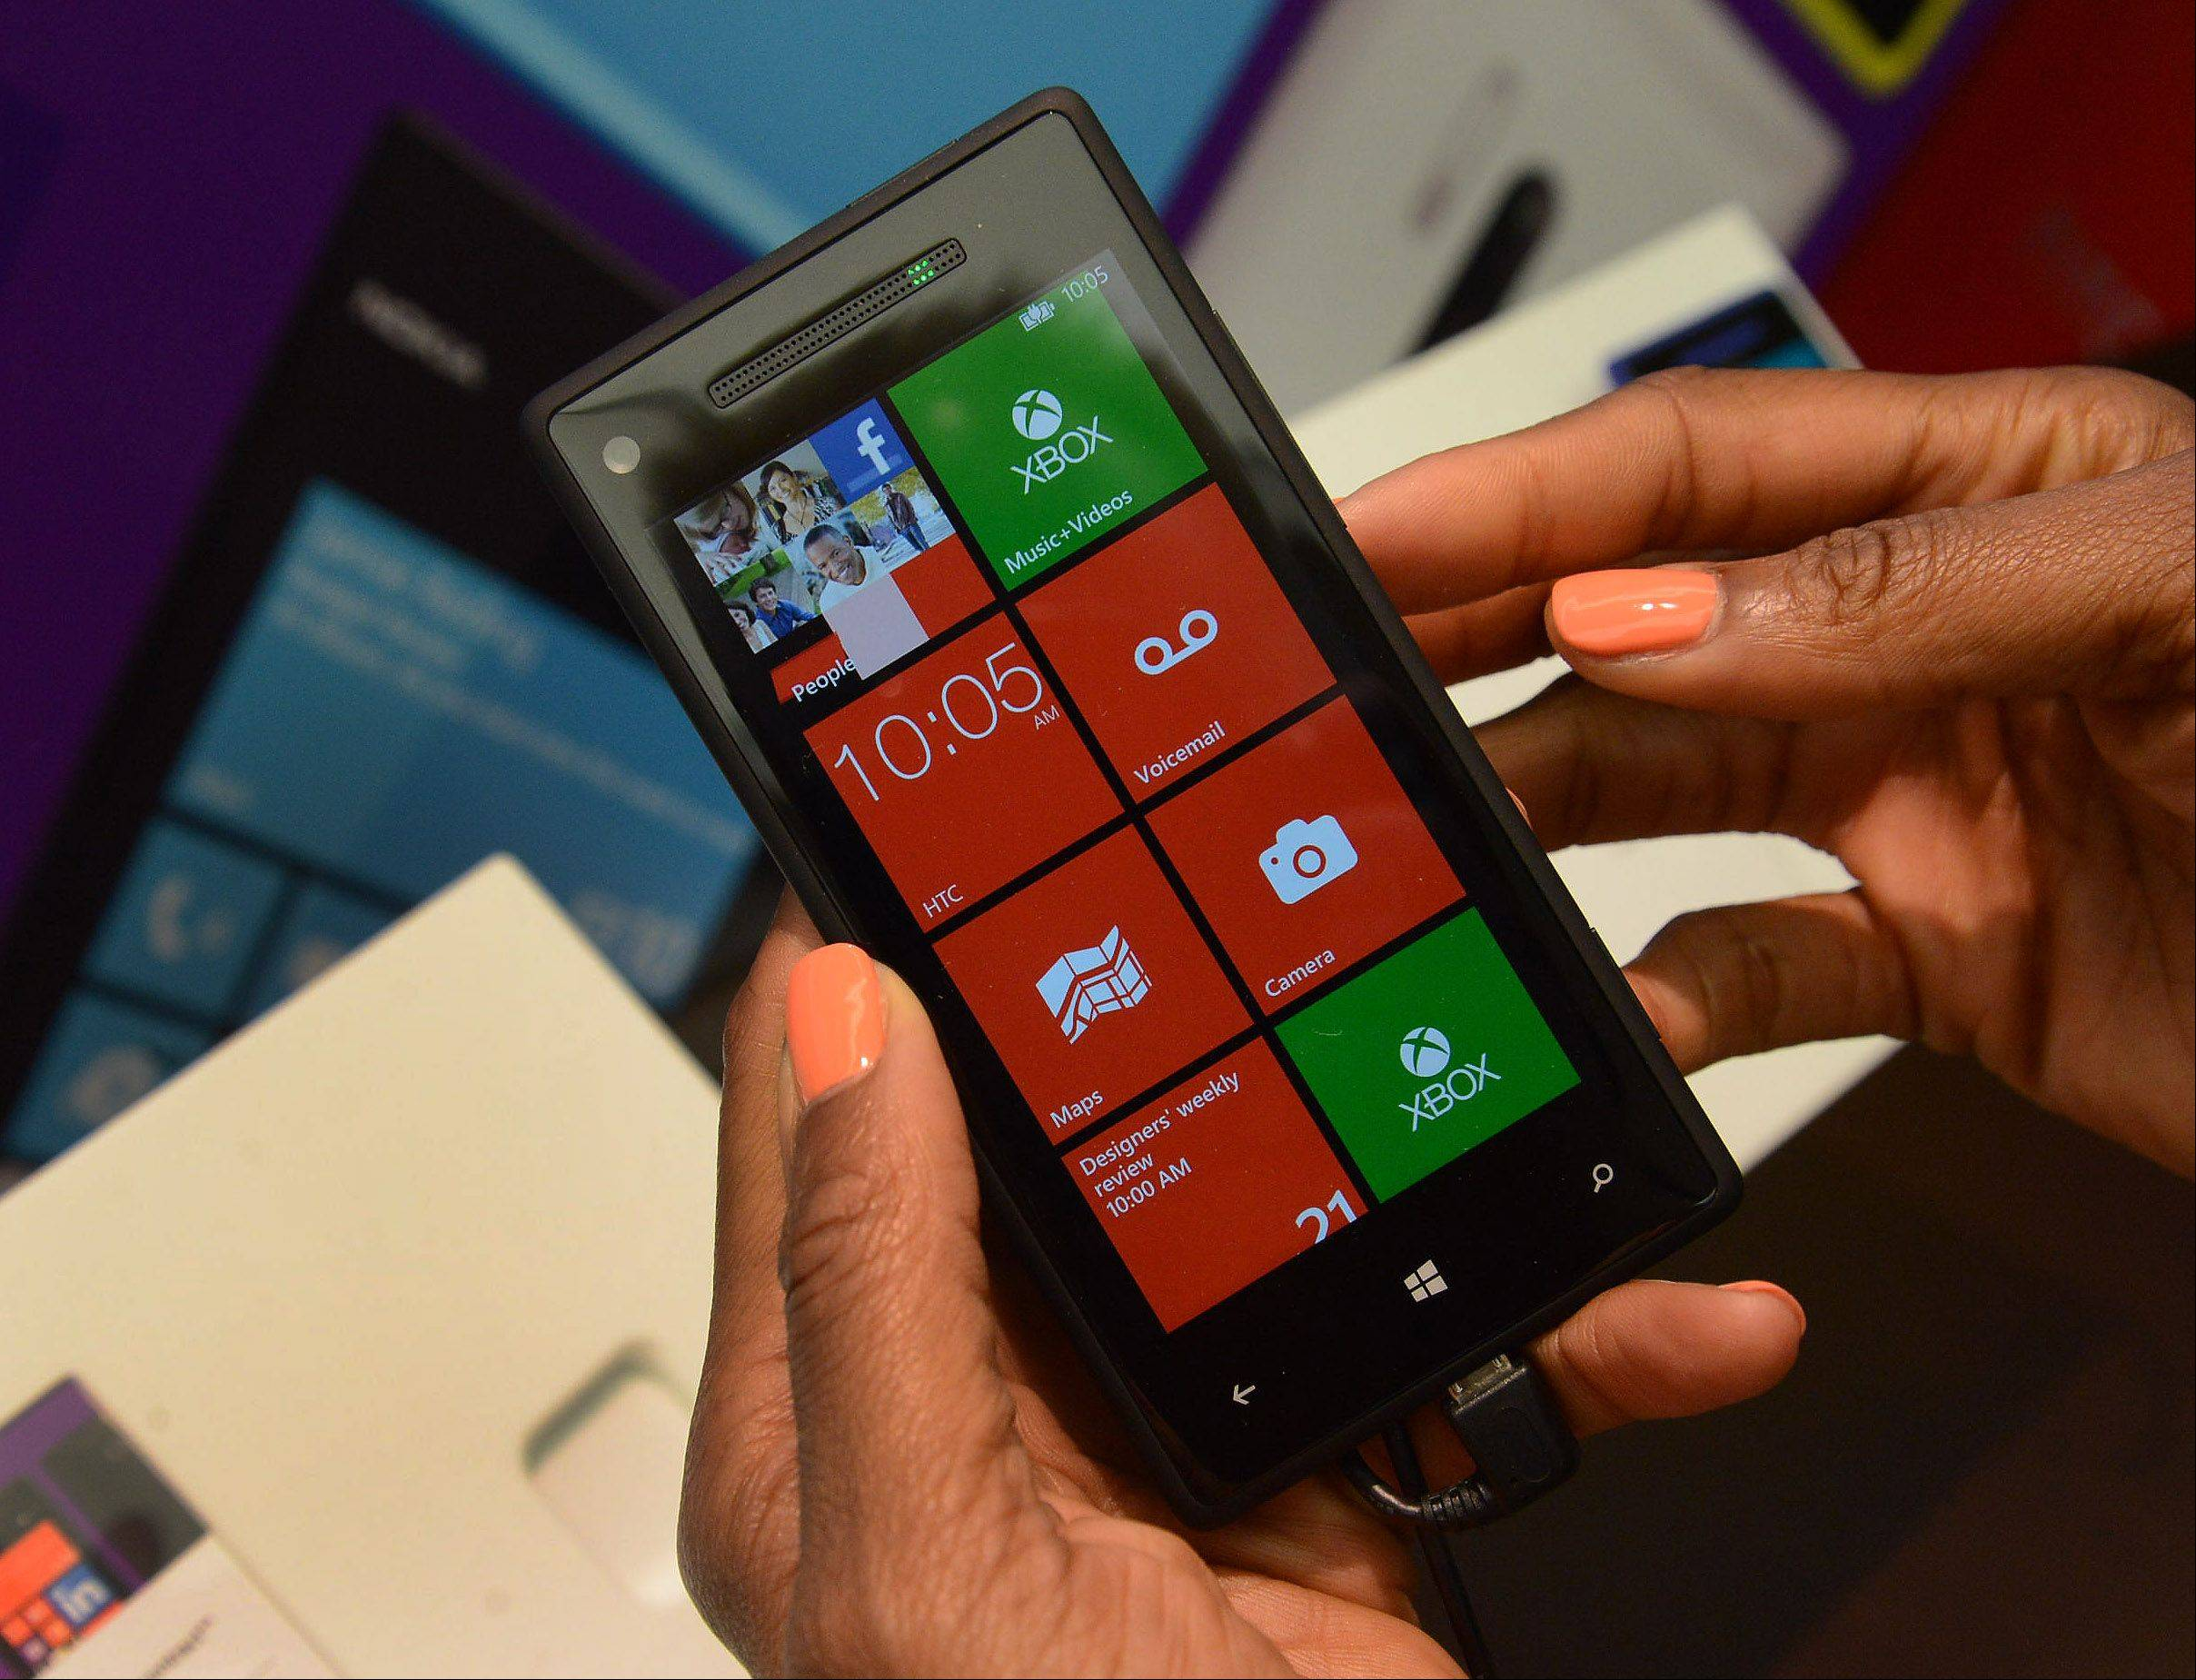 Store manager Lisa Seigneur shows how the Windows Nokia Lumia 920 works at the new Microsoft store inside Woodfield Mall.